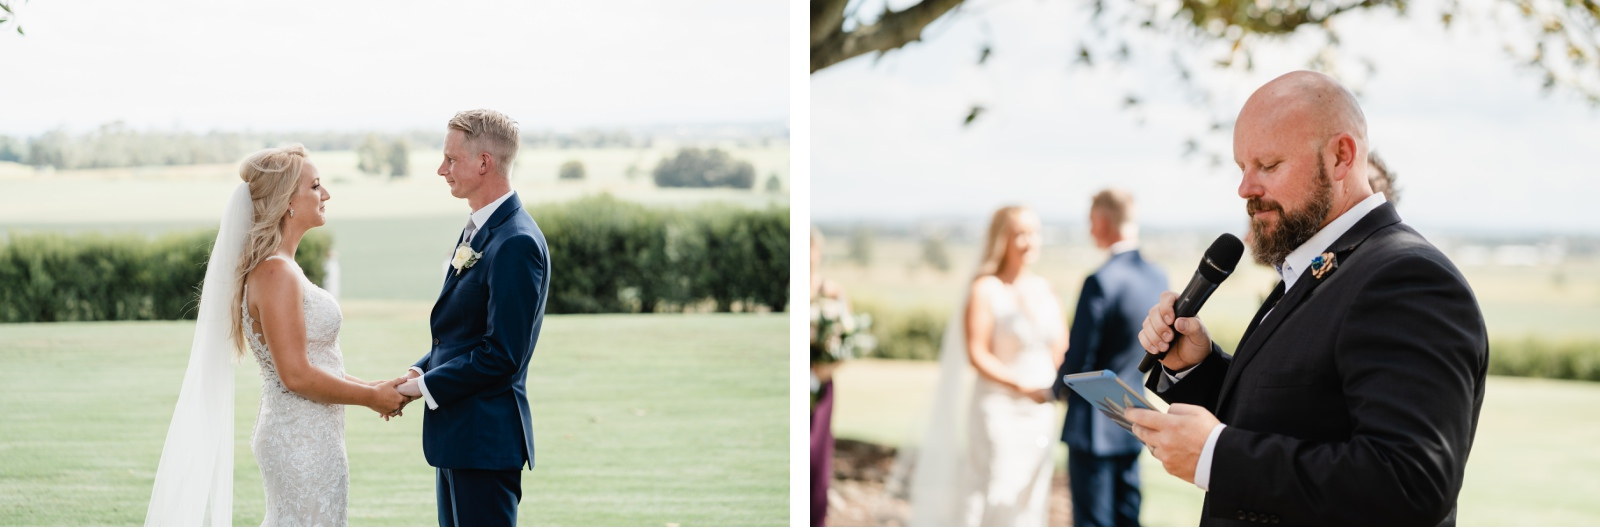 wallalong-house-hunter-valley-wedding-photographer-32